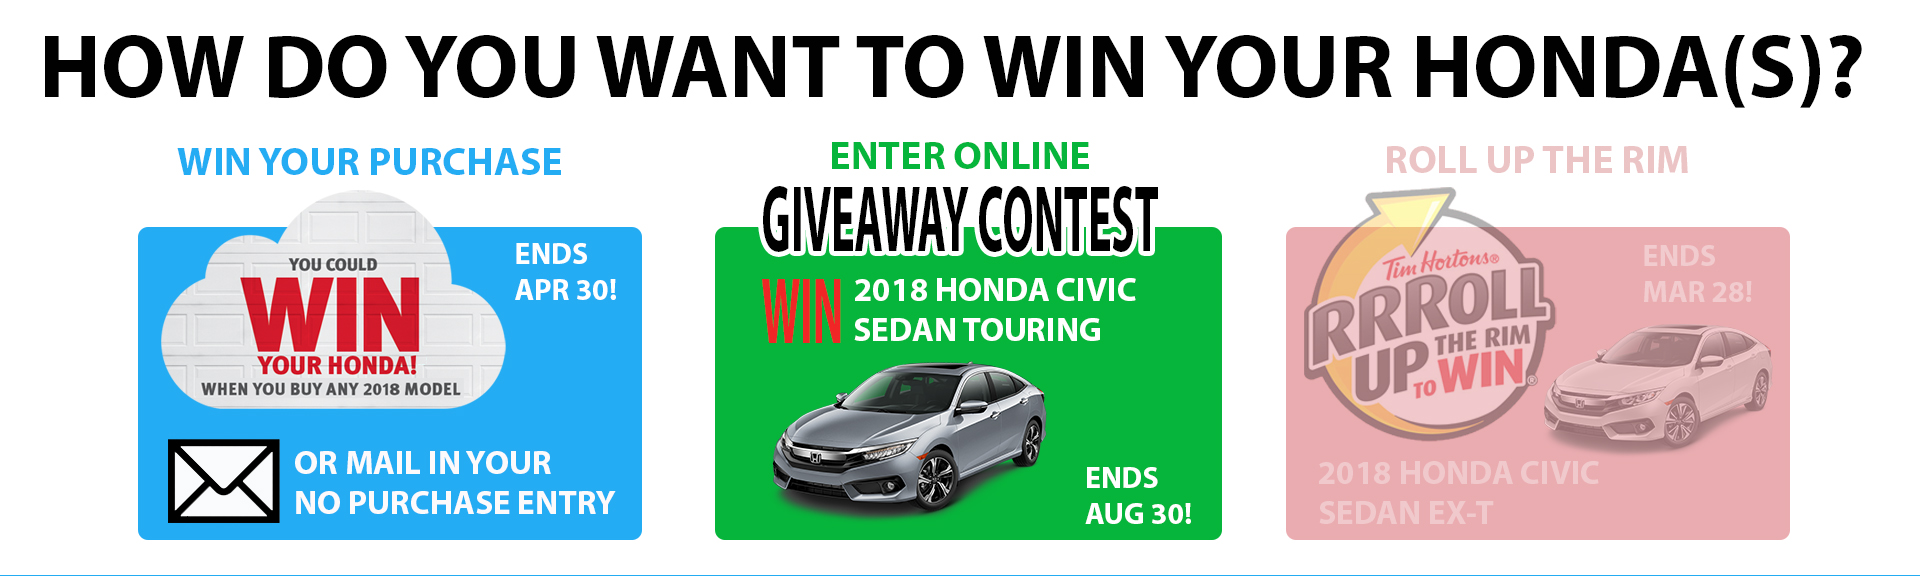 How Do You Want to Win Your Honda?